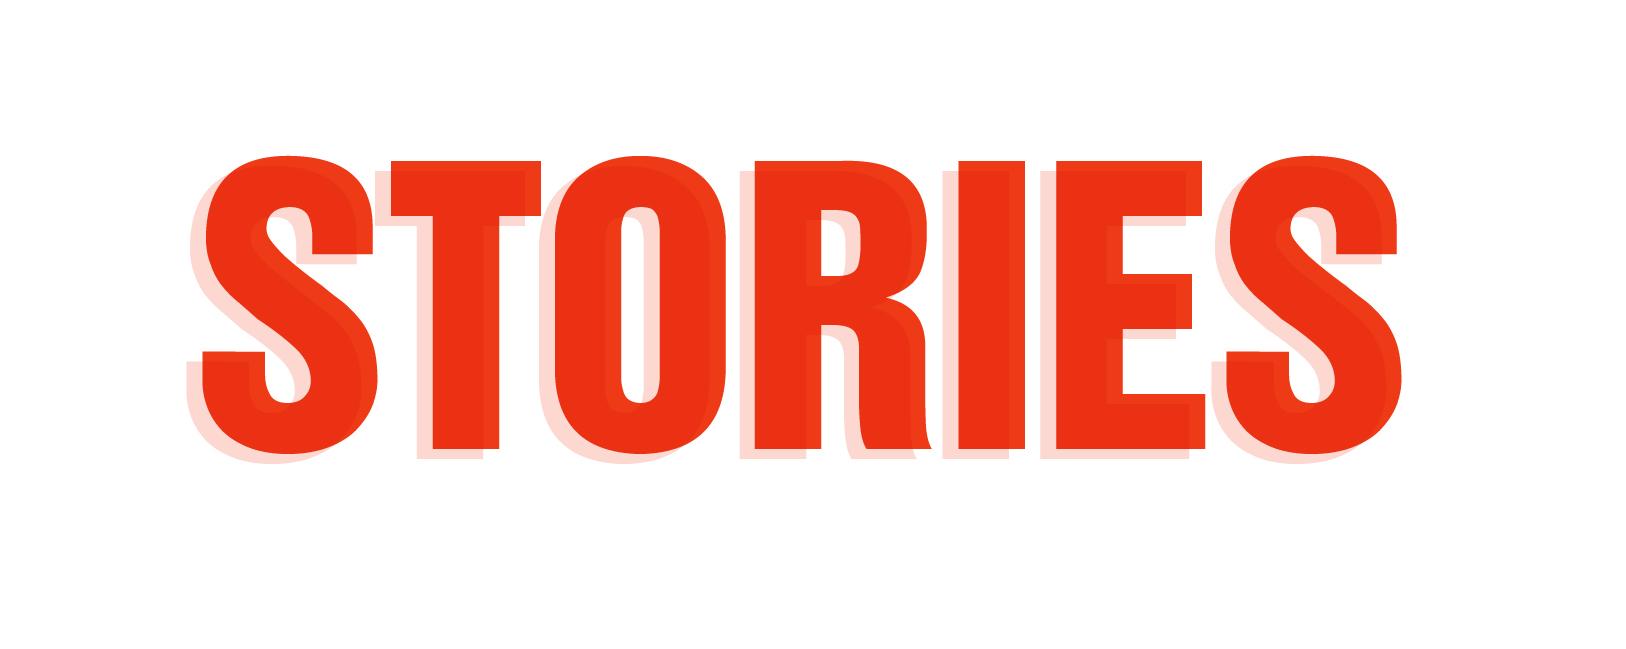 STORIES PAGE BANNER.jpg